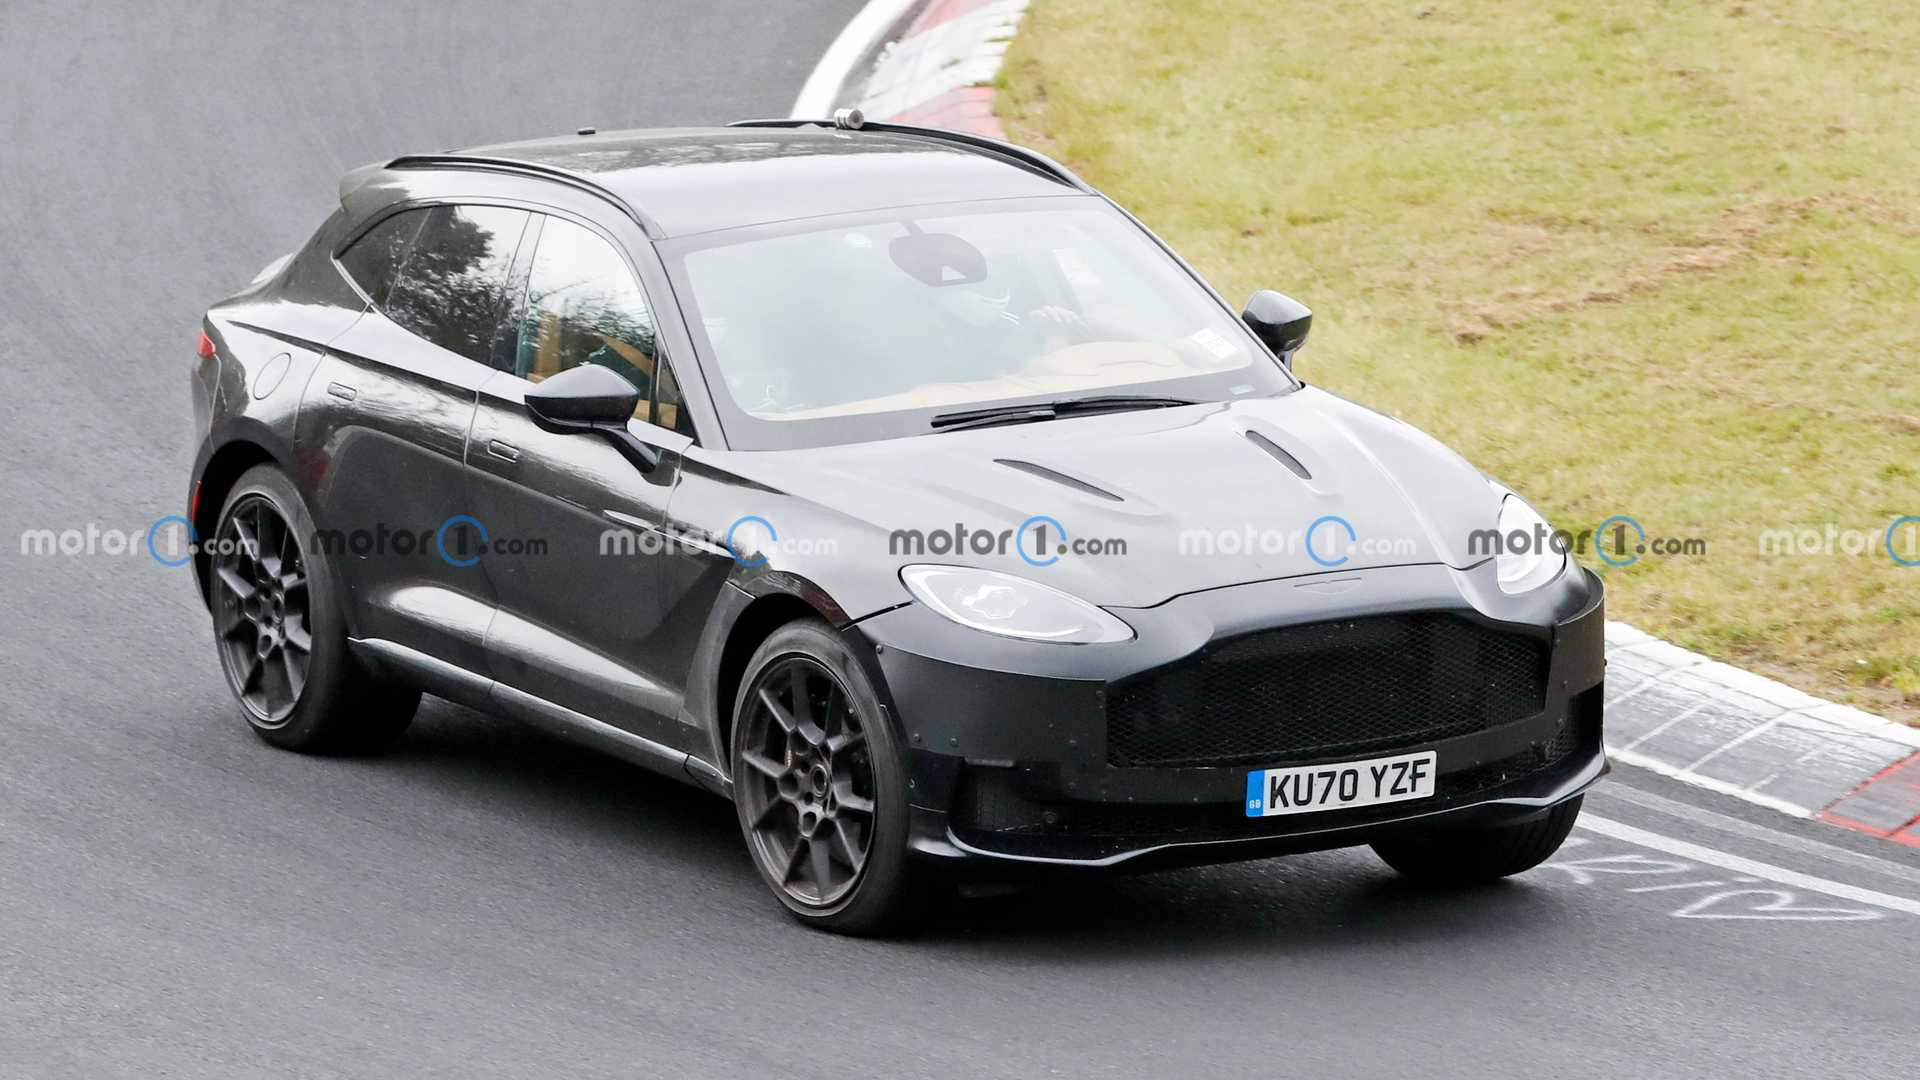 The DBX is a crucially important vehicle for Aston Martin, which relies on it to generate most of its revenue. The future of the DBX family envisions no less than six different models, and it looks like one of them has just been spotted going fast on the North Loop.